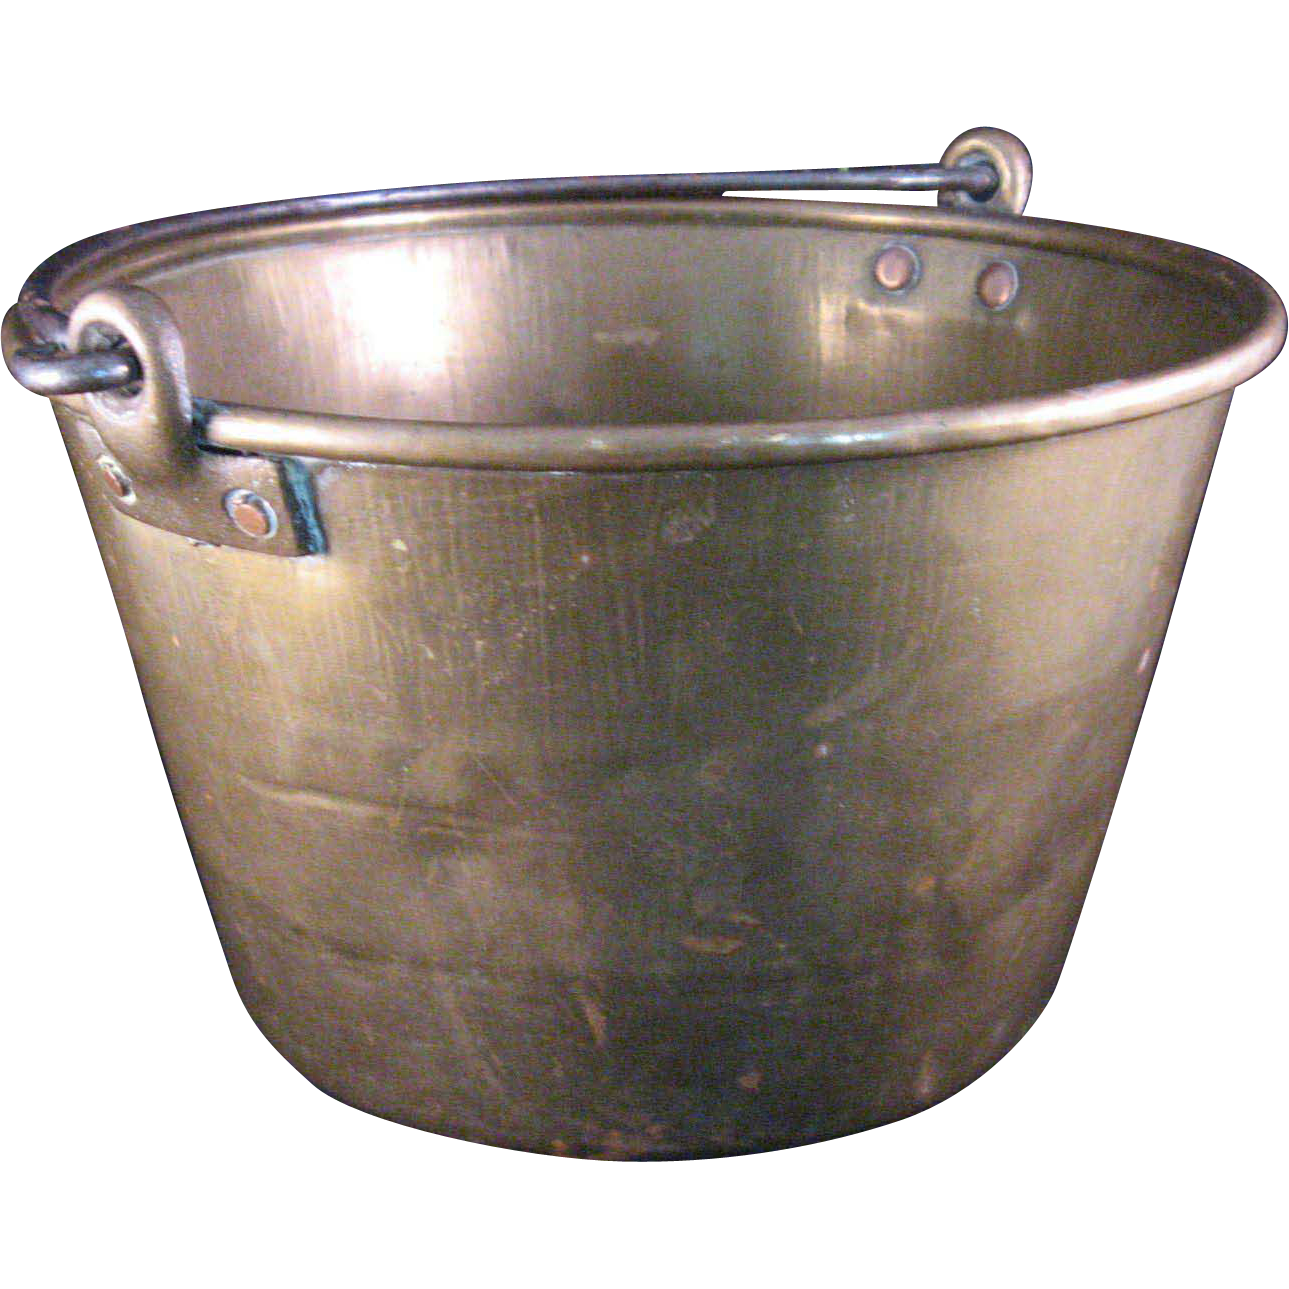 Hammered Brass Bucket Pail With Iron Handle And Copper Rivets 1 Gallon Iron Handles Copper Rivets Bucket